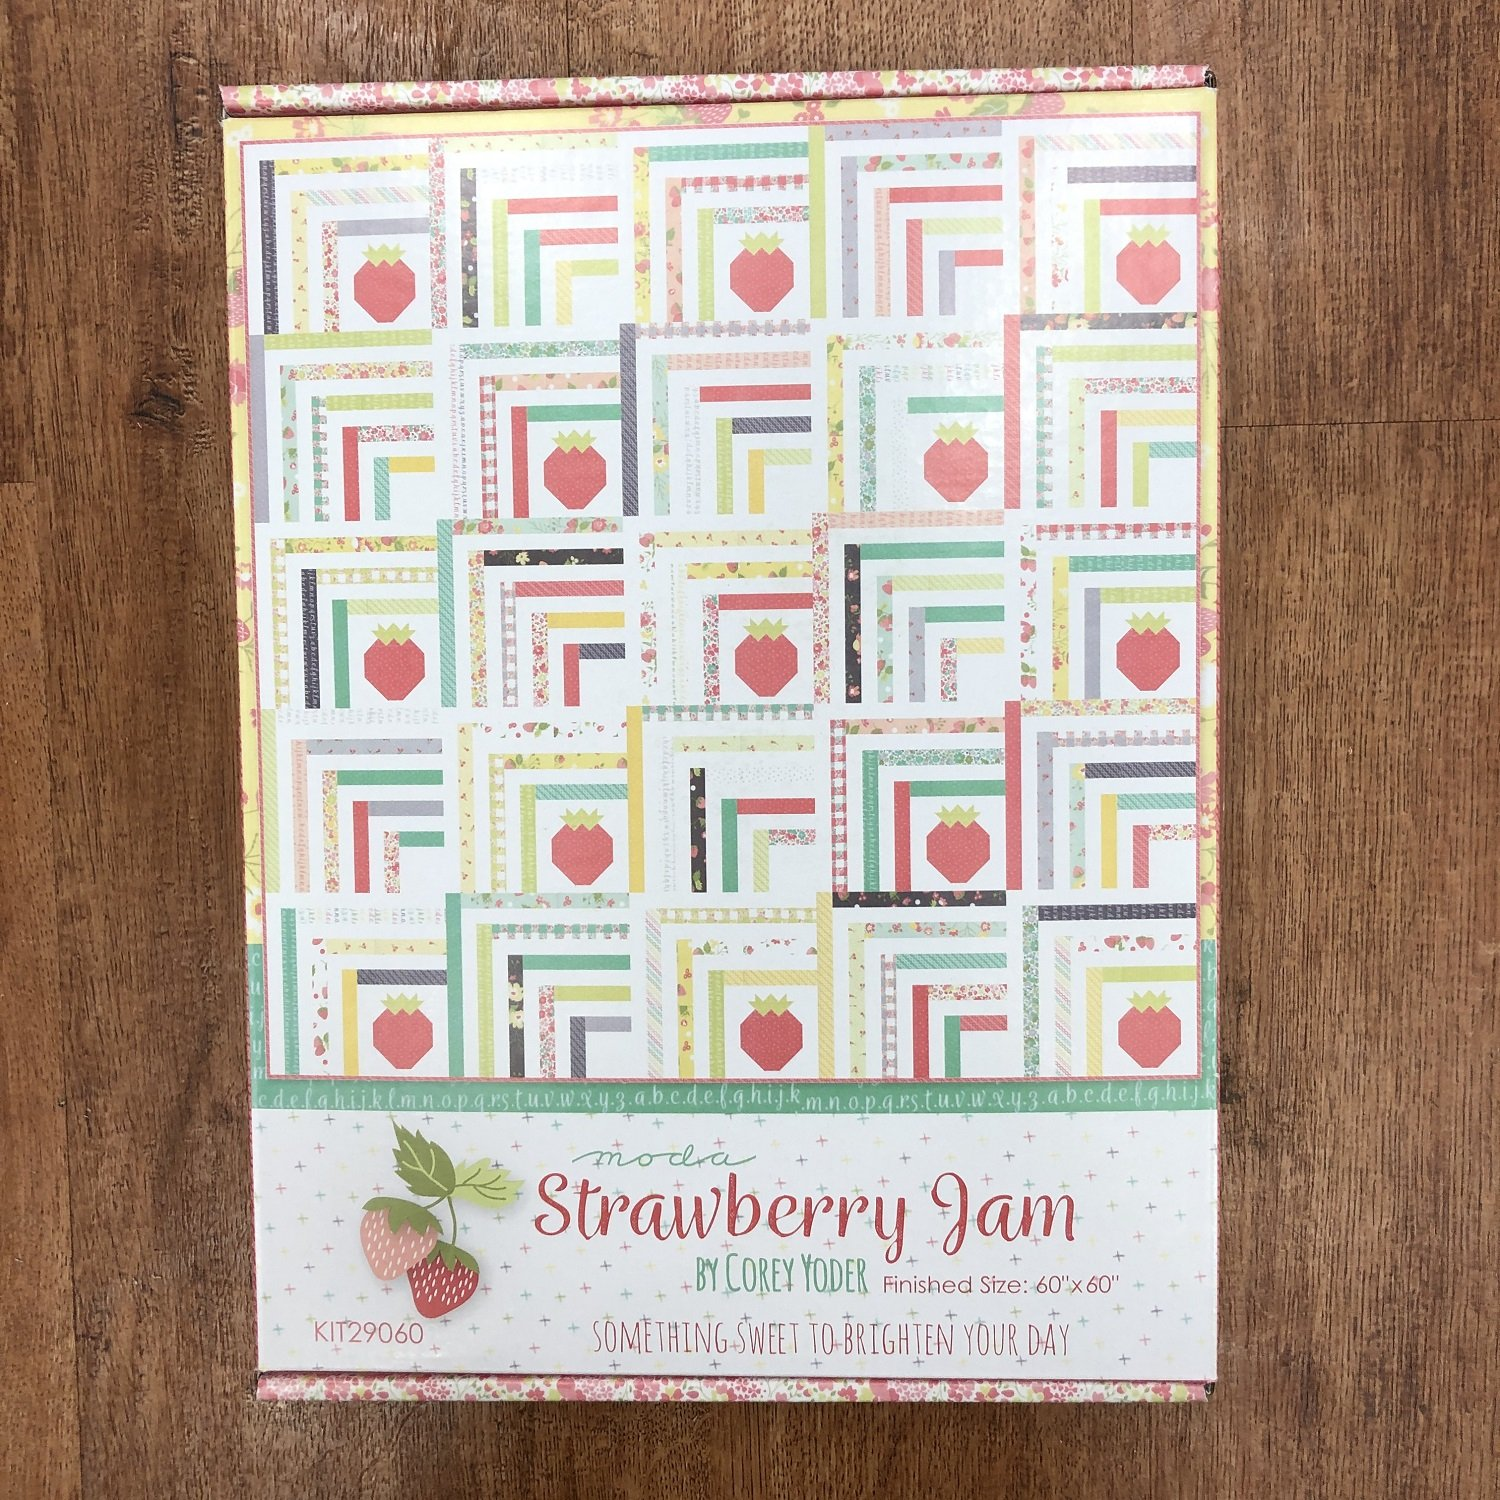 Strawberry Jam Sincerely Yours Quilt Kit